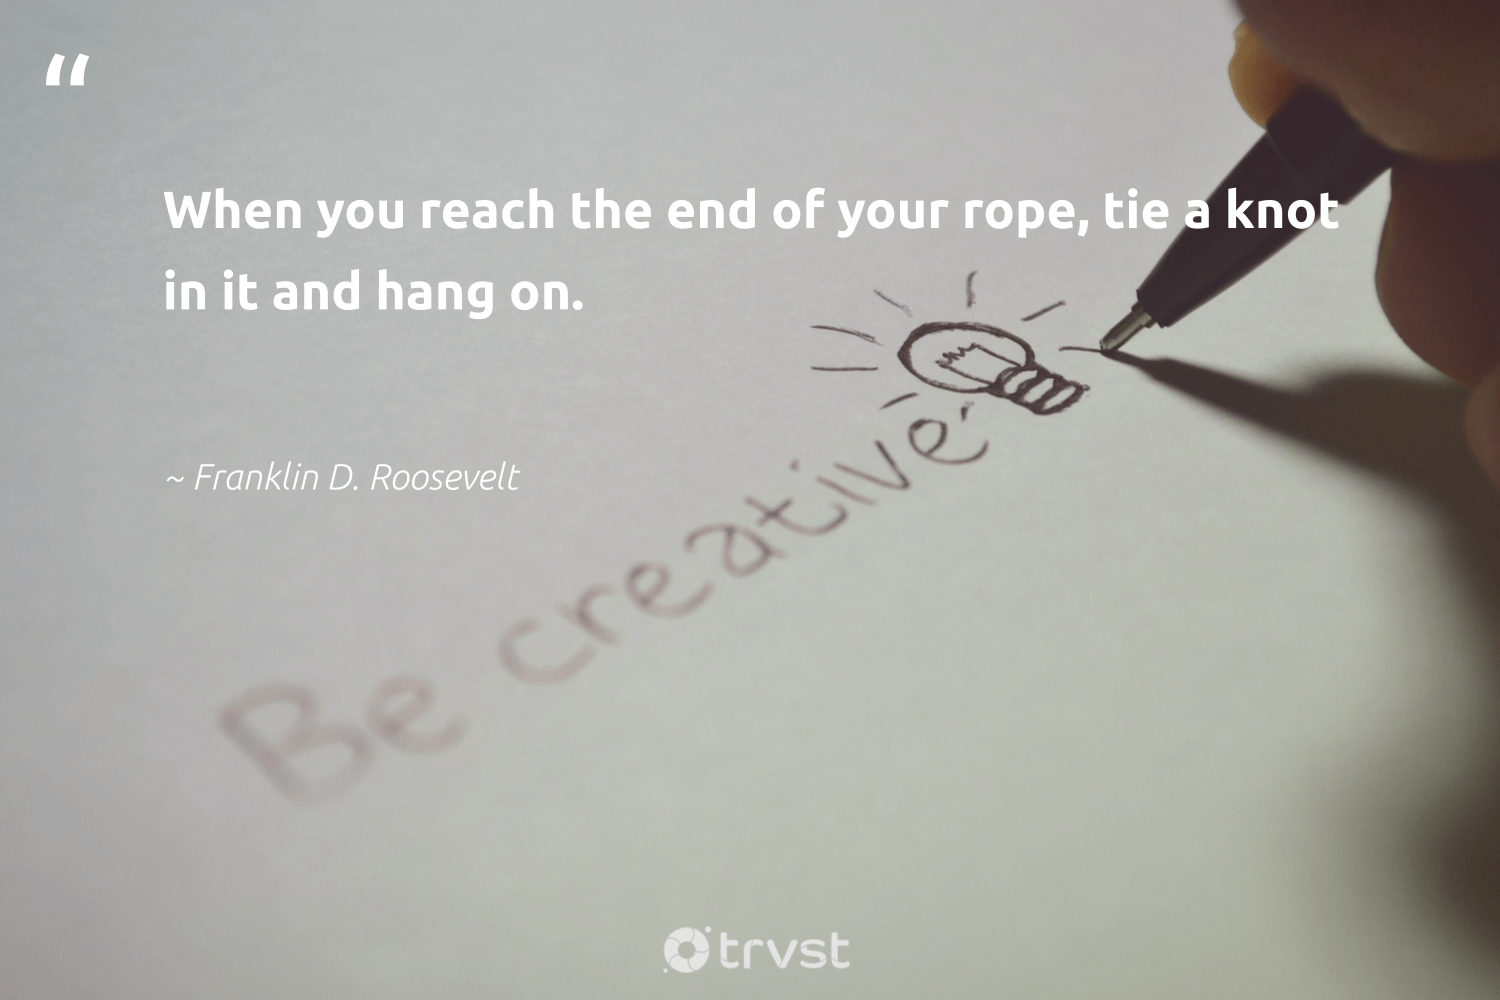 """""""When you reach the end of your rope, tie a knot in it and hang on.""""  - Franklin D. Roosevelt #trvst #quotes #begreat #dosomething #softskills #changetheworld #nevergiveup #dogood #futureofwork #bethechange #dotherightthing #planetearthfirst"""